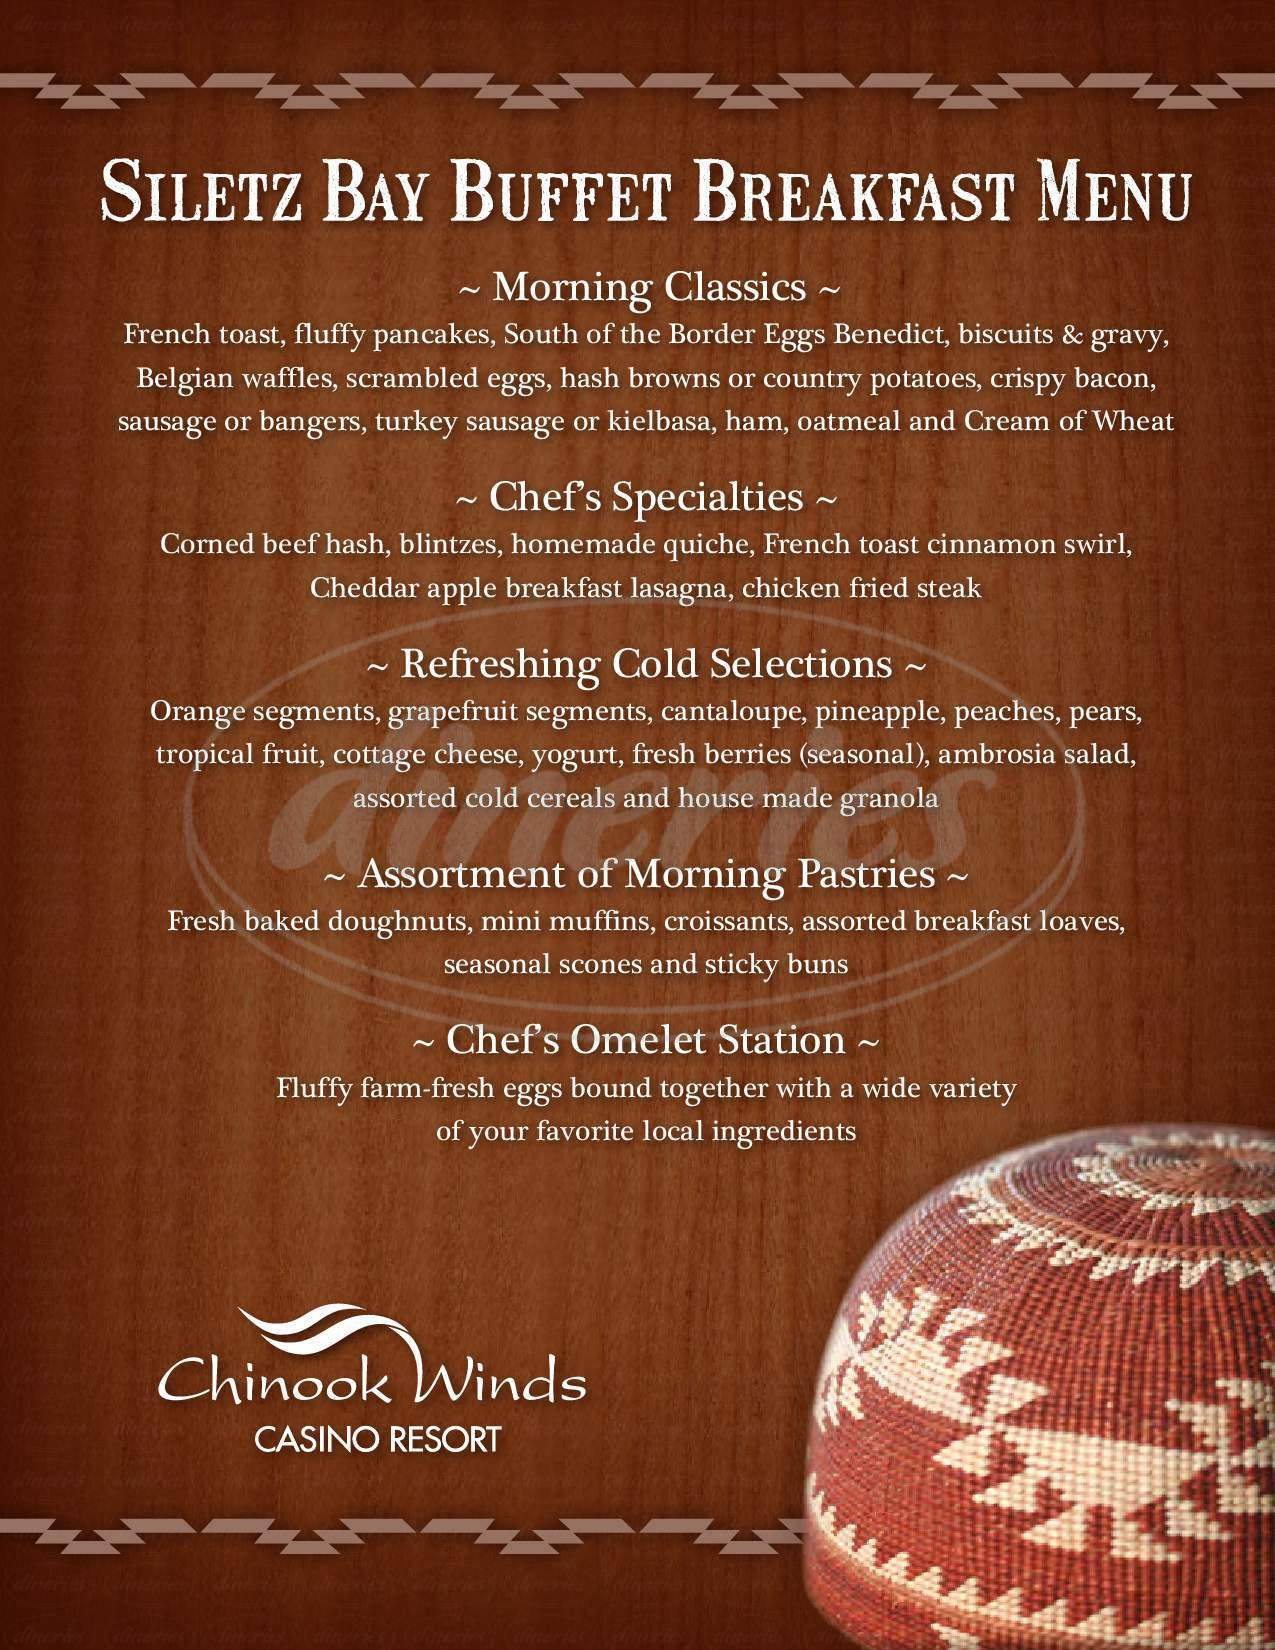 menu for Siletz Bay Buffet